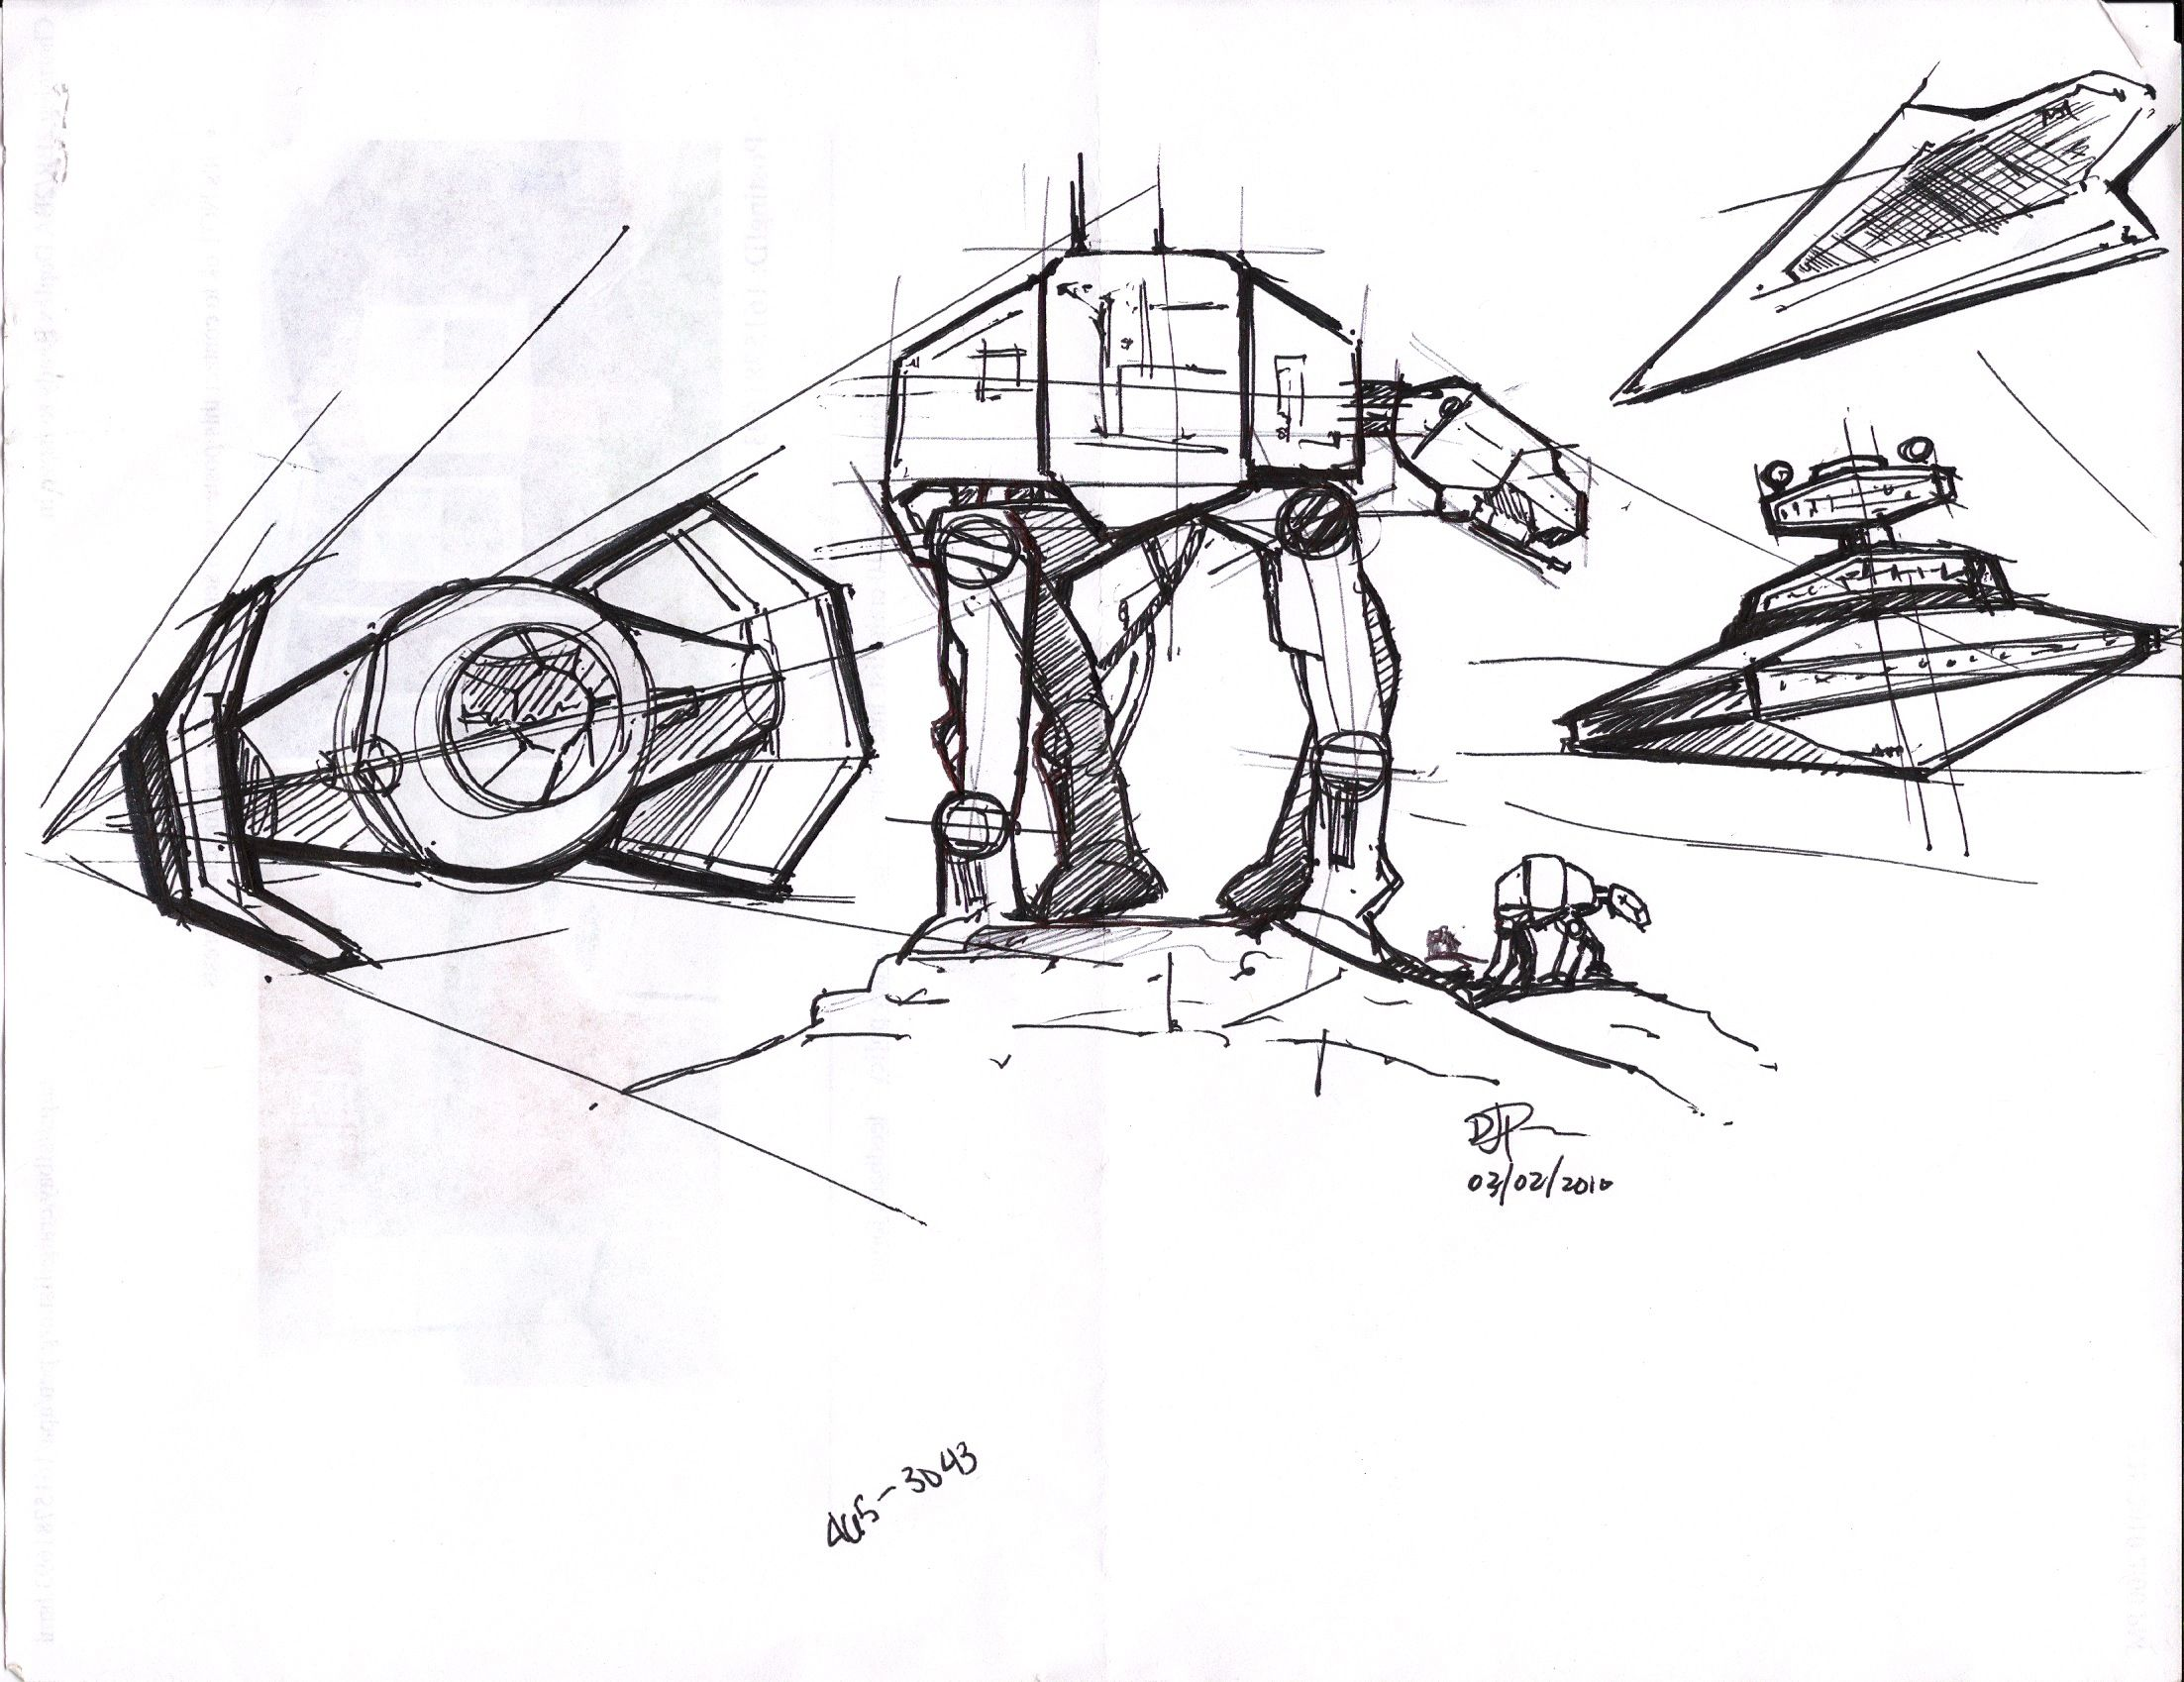 Star Wars Imperial Vehicles Sketches STAR WARS